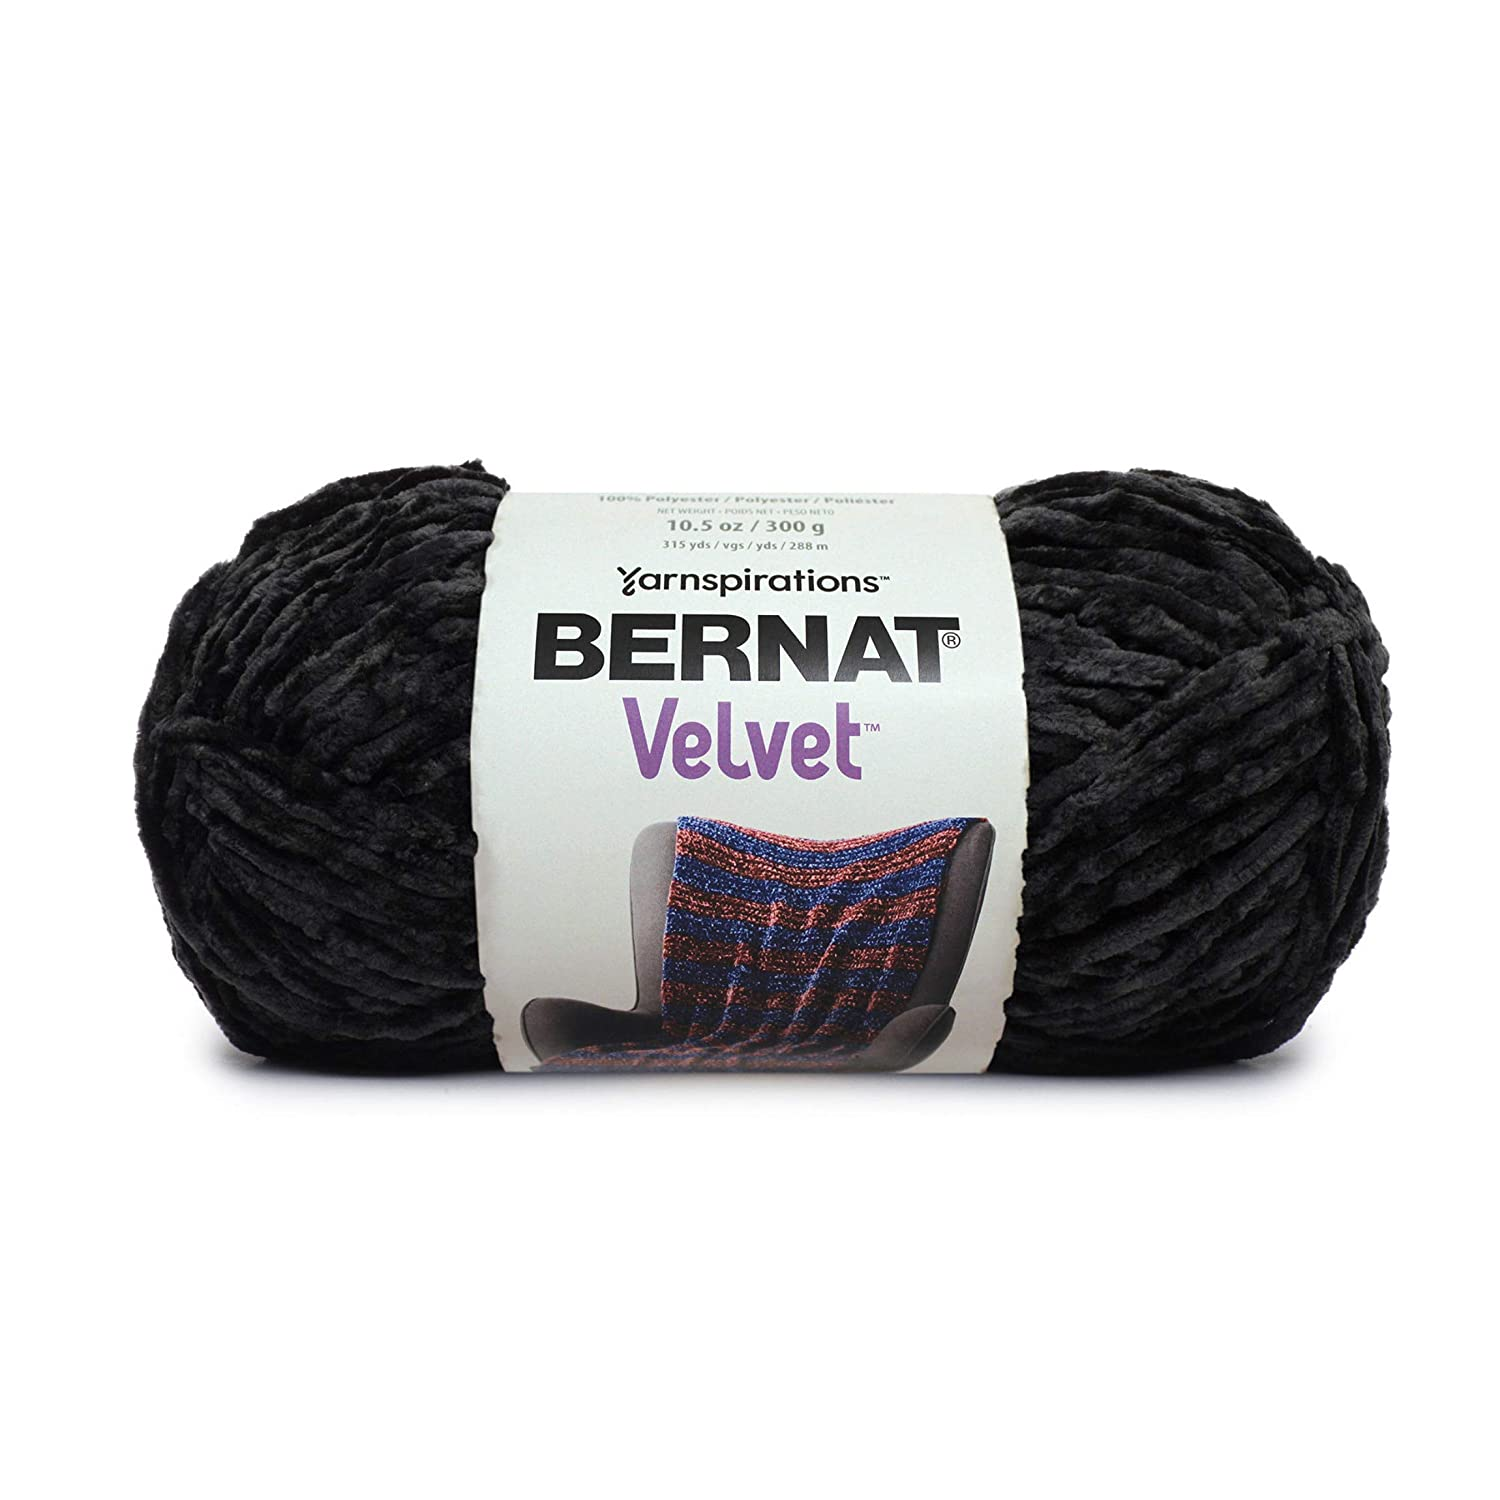 Bernat Velvet Yarn, 10.5 oz, 1 Ball, Blackbird